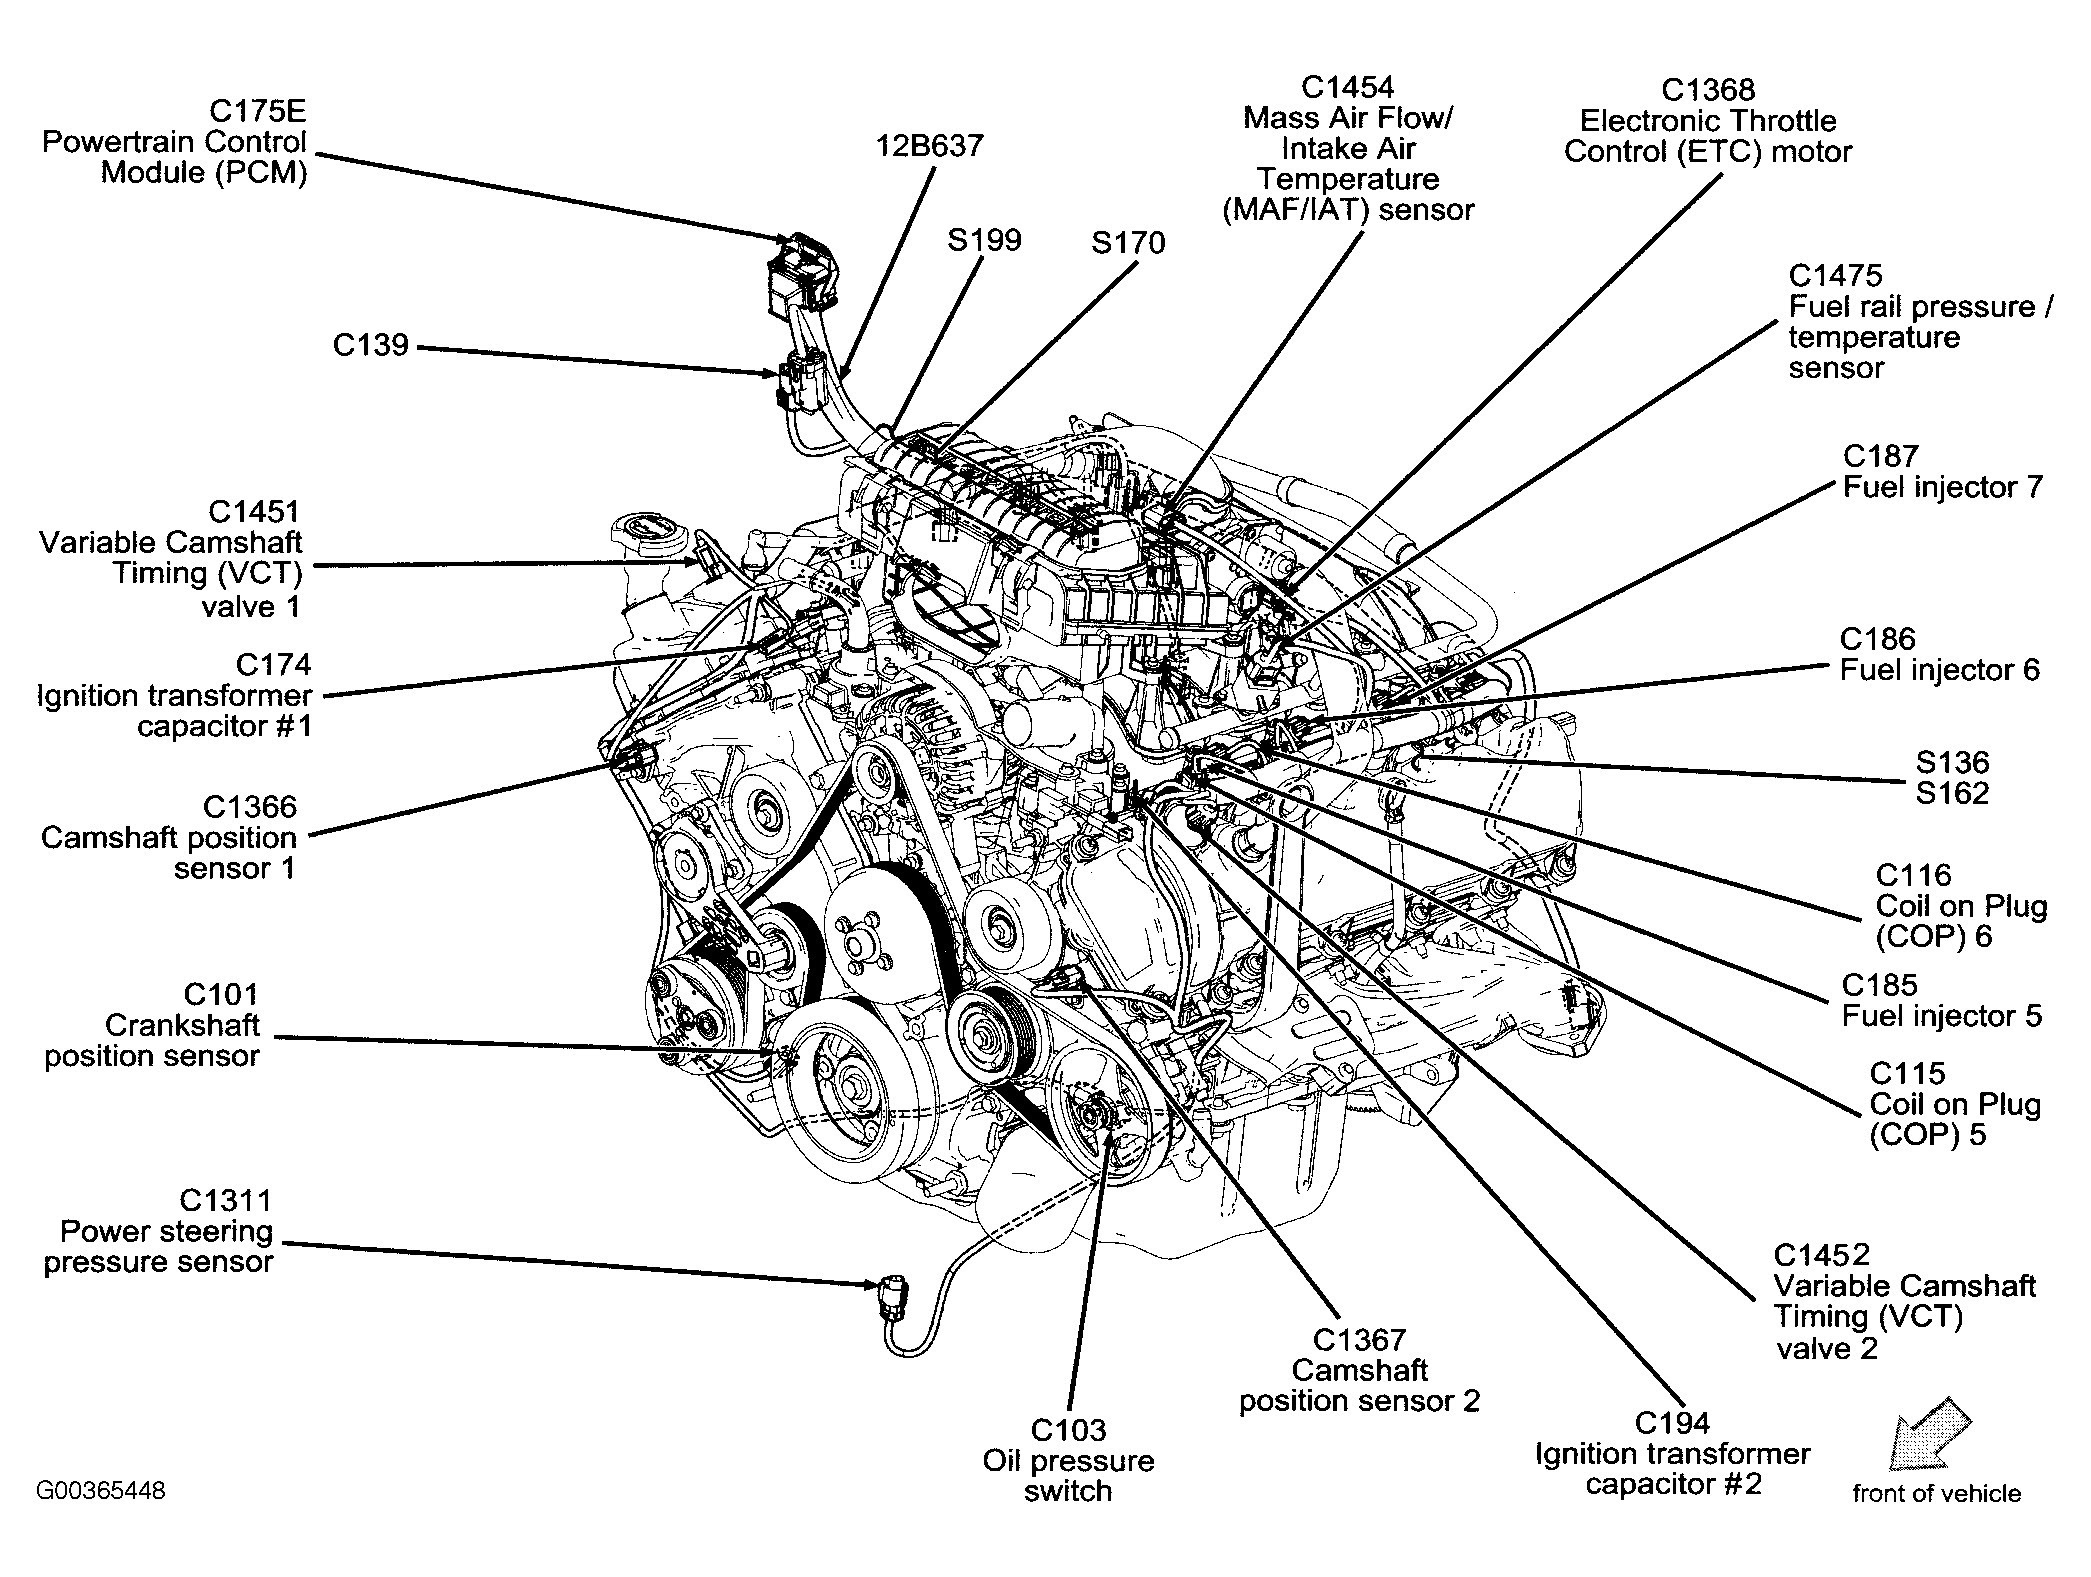 Audi V6 Engine Diagram Wiring Diagrams Post Pose Indor Pose Indor Michelegori It